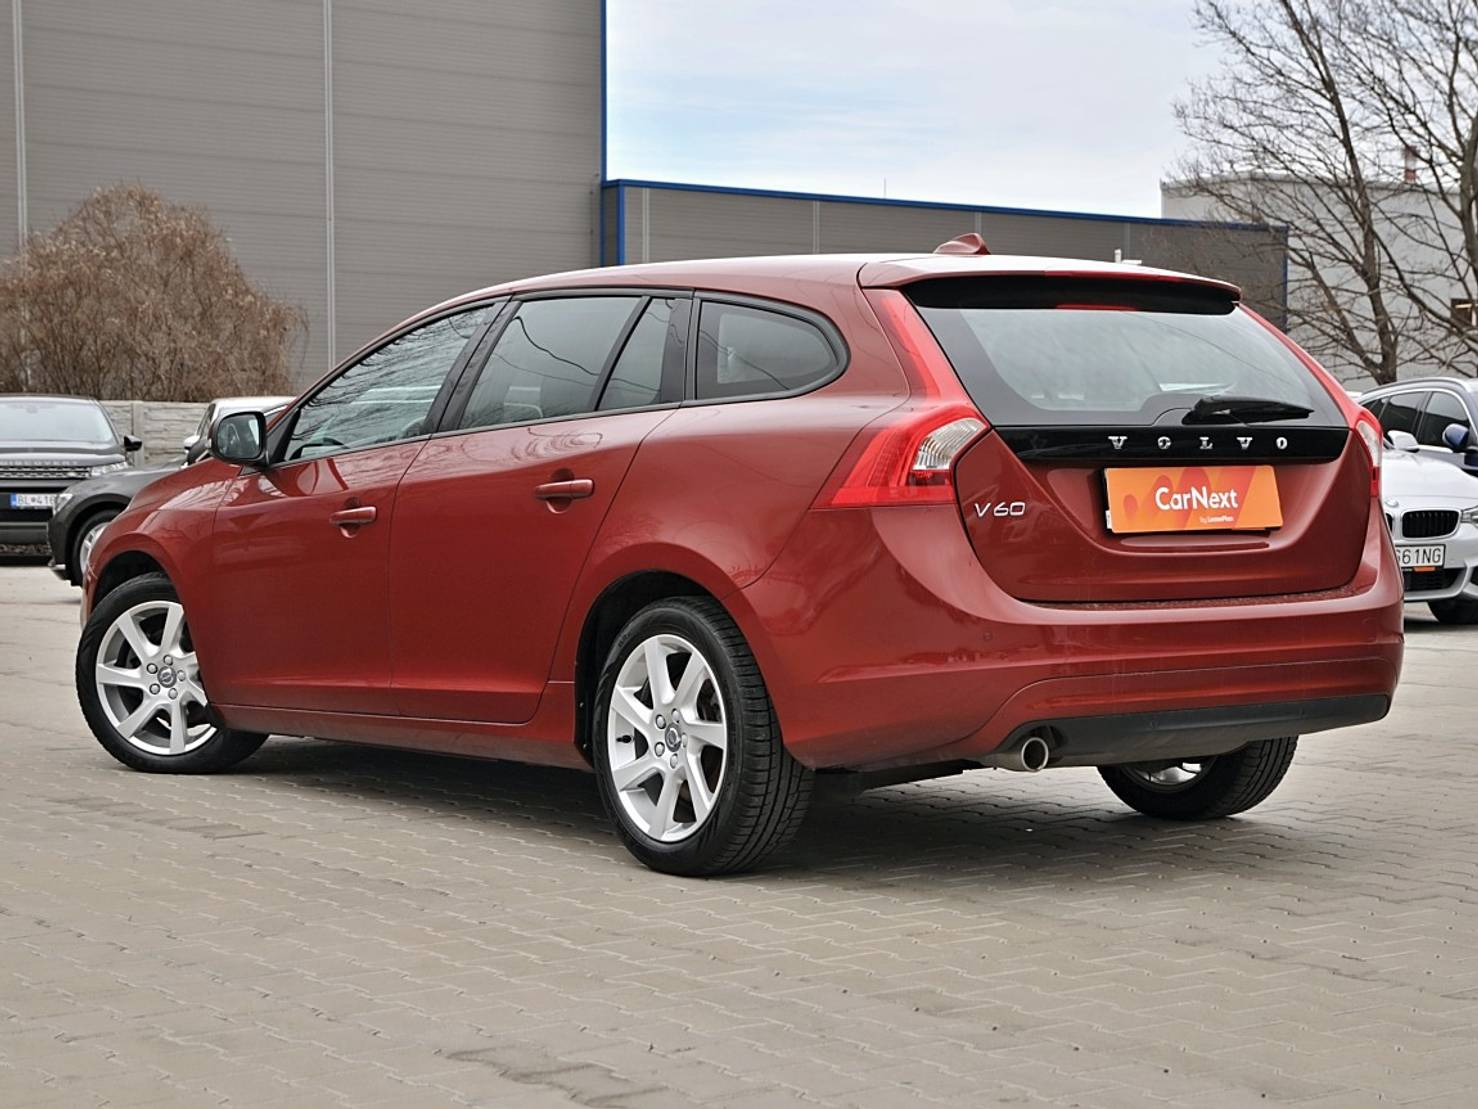 Volvo V60 2.0 D3 Kinetic Geartronic detail2